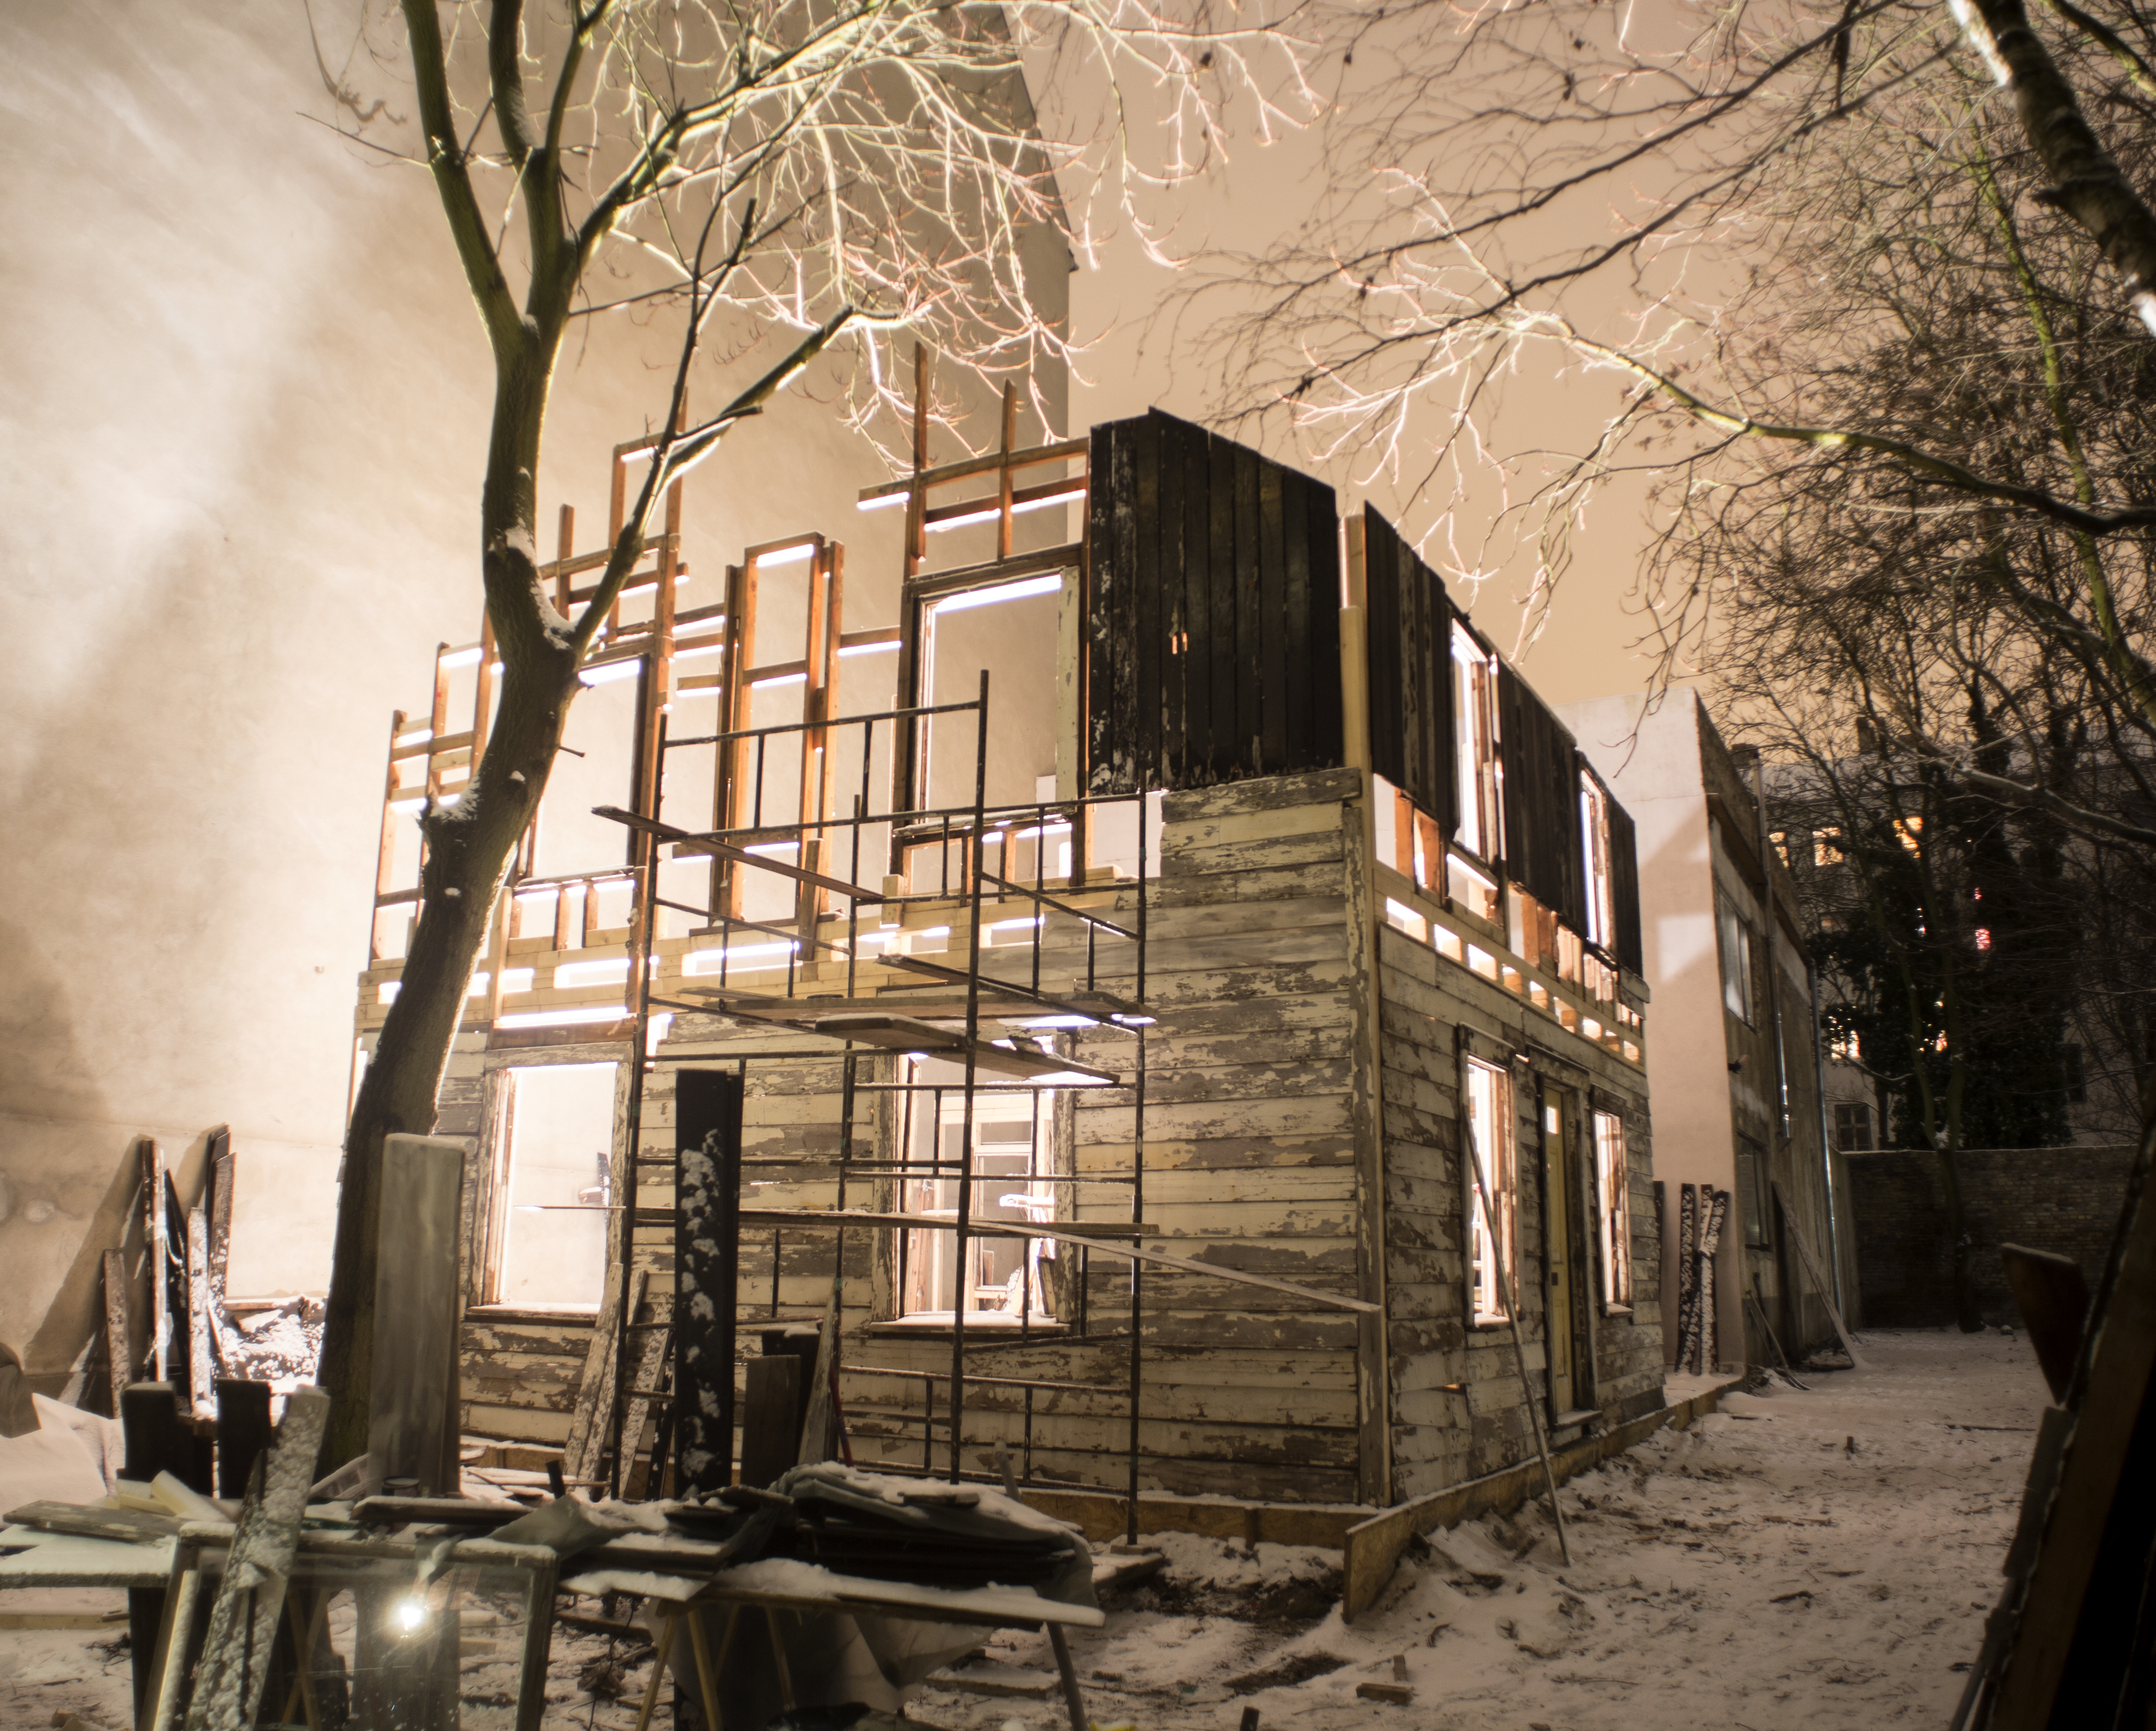 Rosa Parks' house is going on display this weekend in Berlin